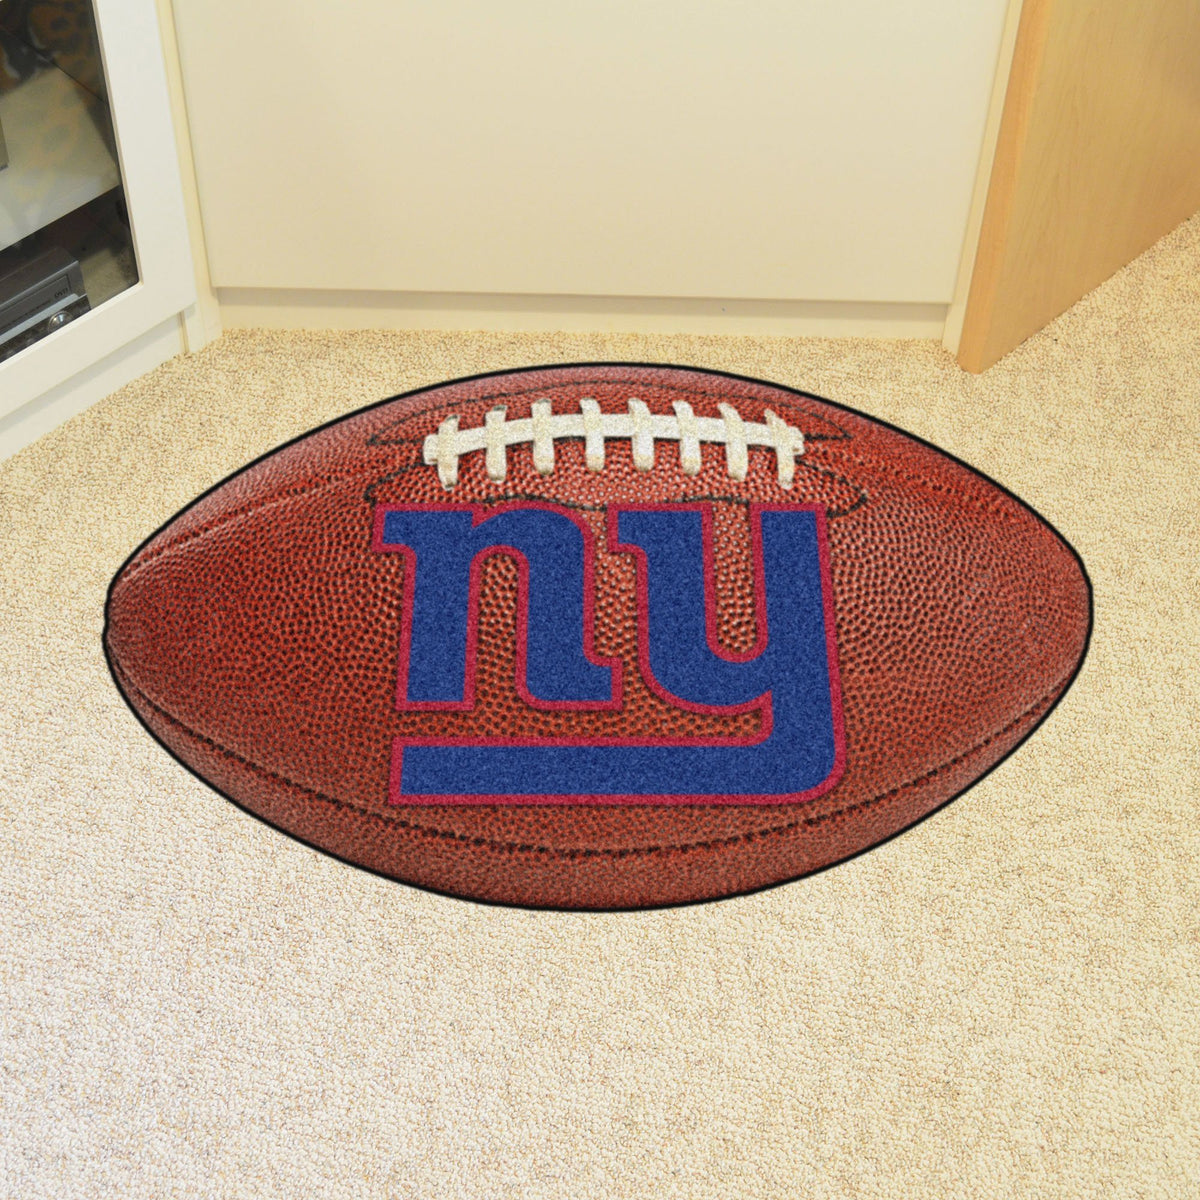 NFL - Football Mat NFL Mats, Custom Shape Rugs, Football Mat, NFL, Home Fan Mats New York Giants